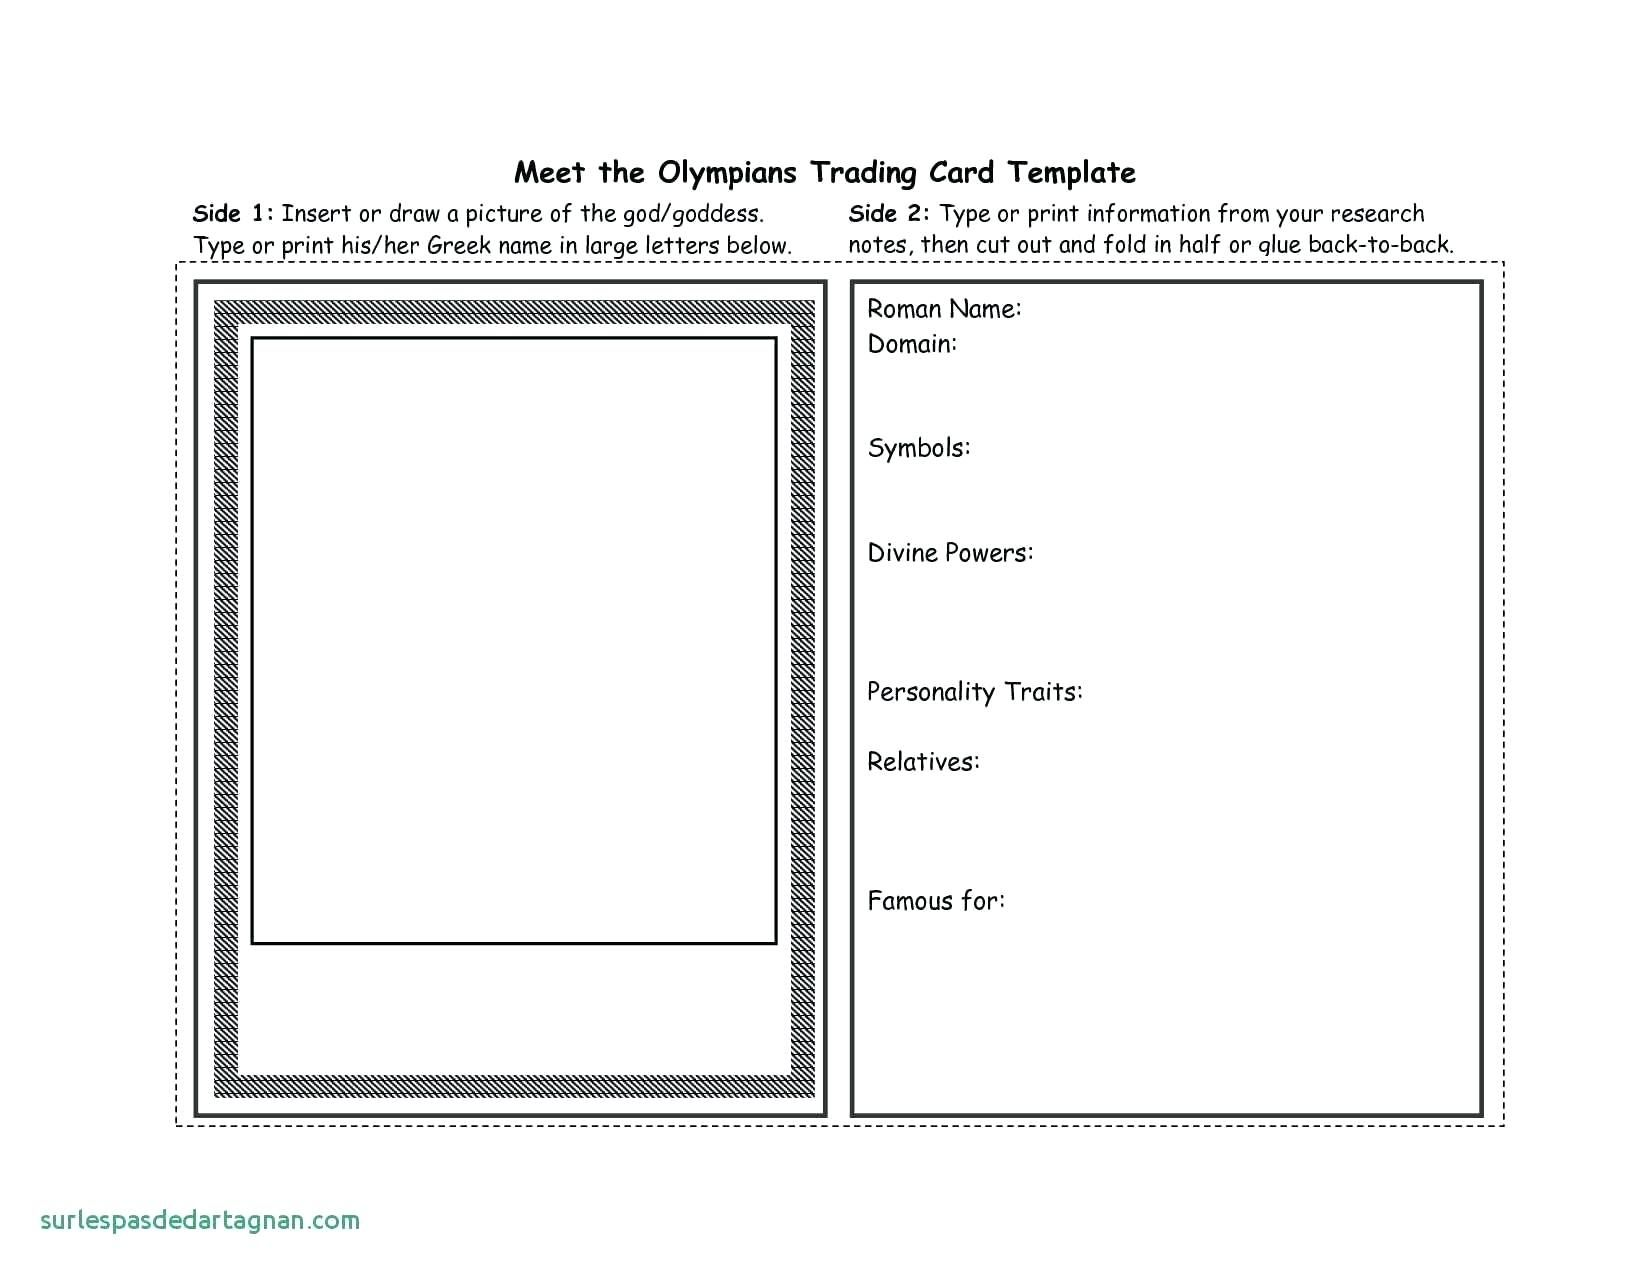 The Remarkable 003 Baseball Card Template Verypage Co Intended For Trading Regarding Trading Cards T Trading Card Template Baseball Card Template Card Template